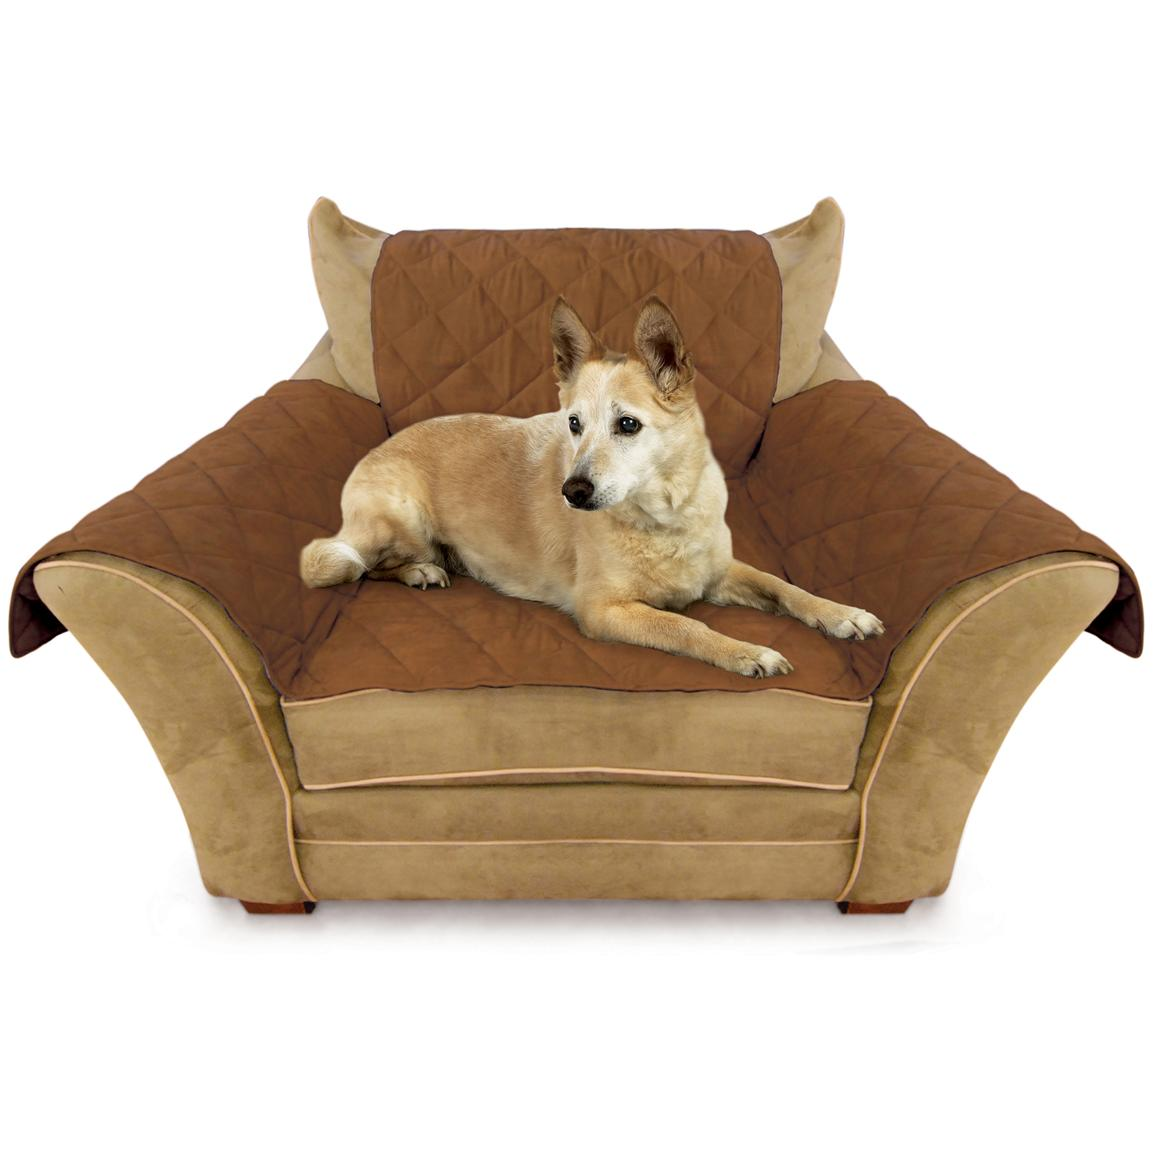 K&H Pet Products Furniture Cover™, Mocha - Chair